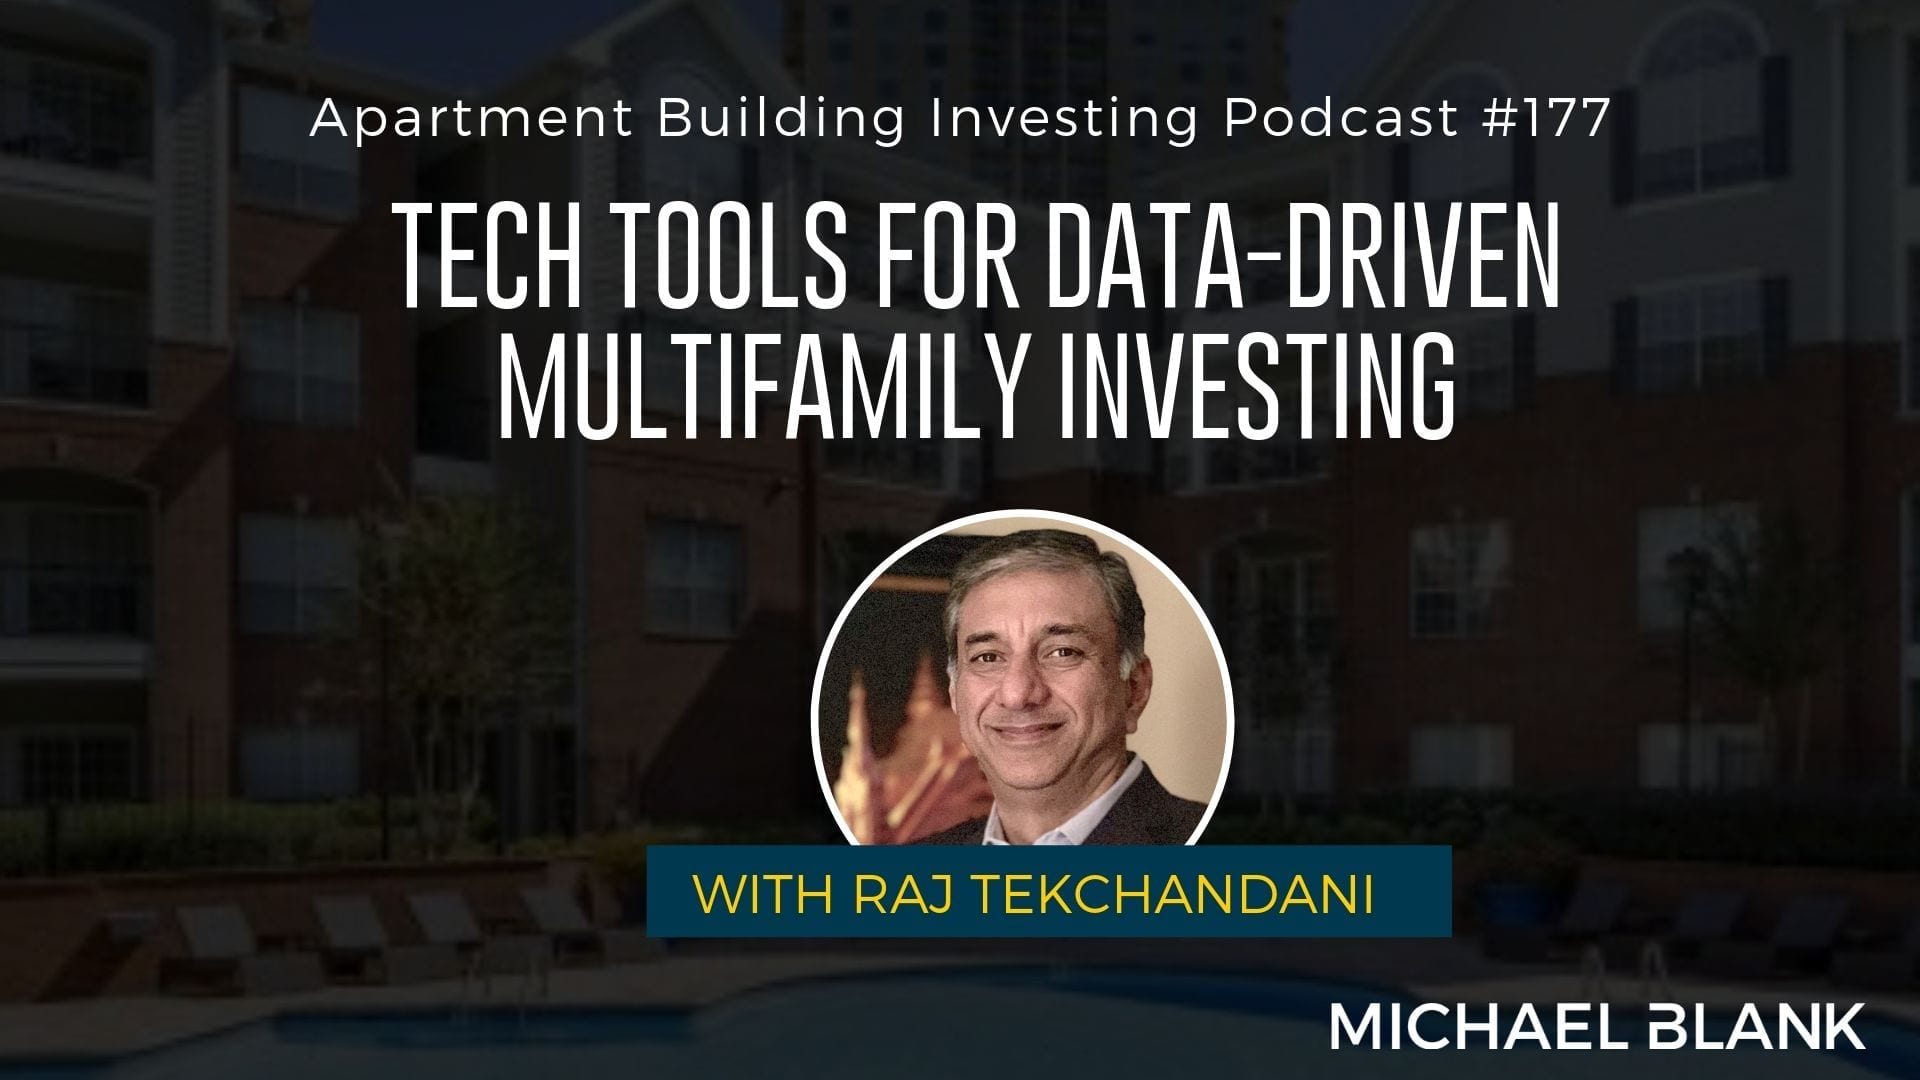 MB 177: Tech Tools for Data-Driven Multifamily Investing – With Raj Tekchandani